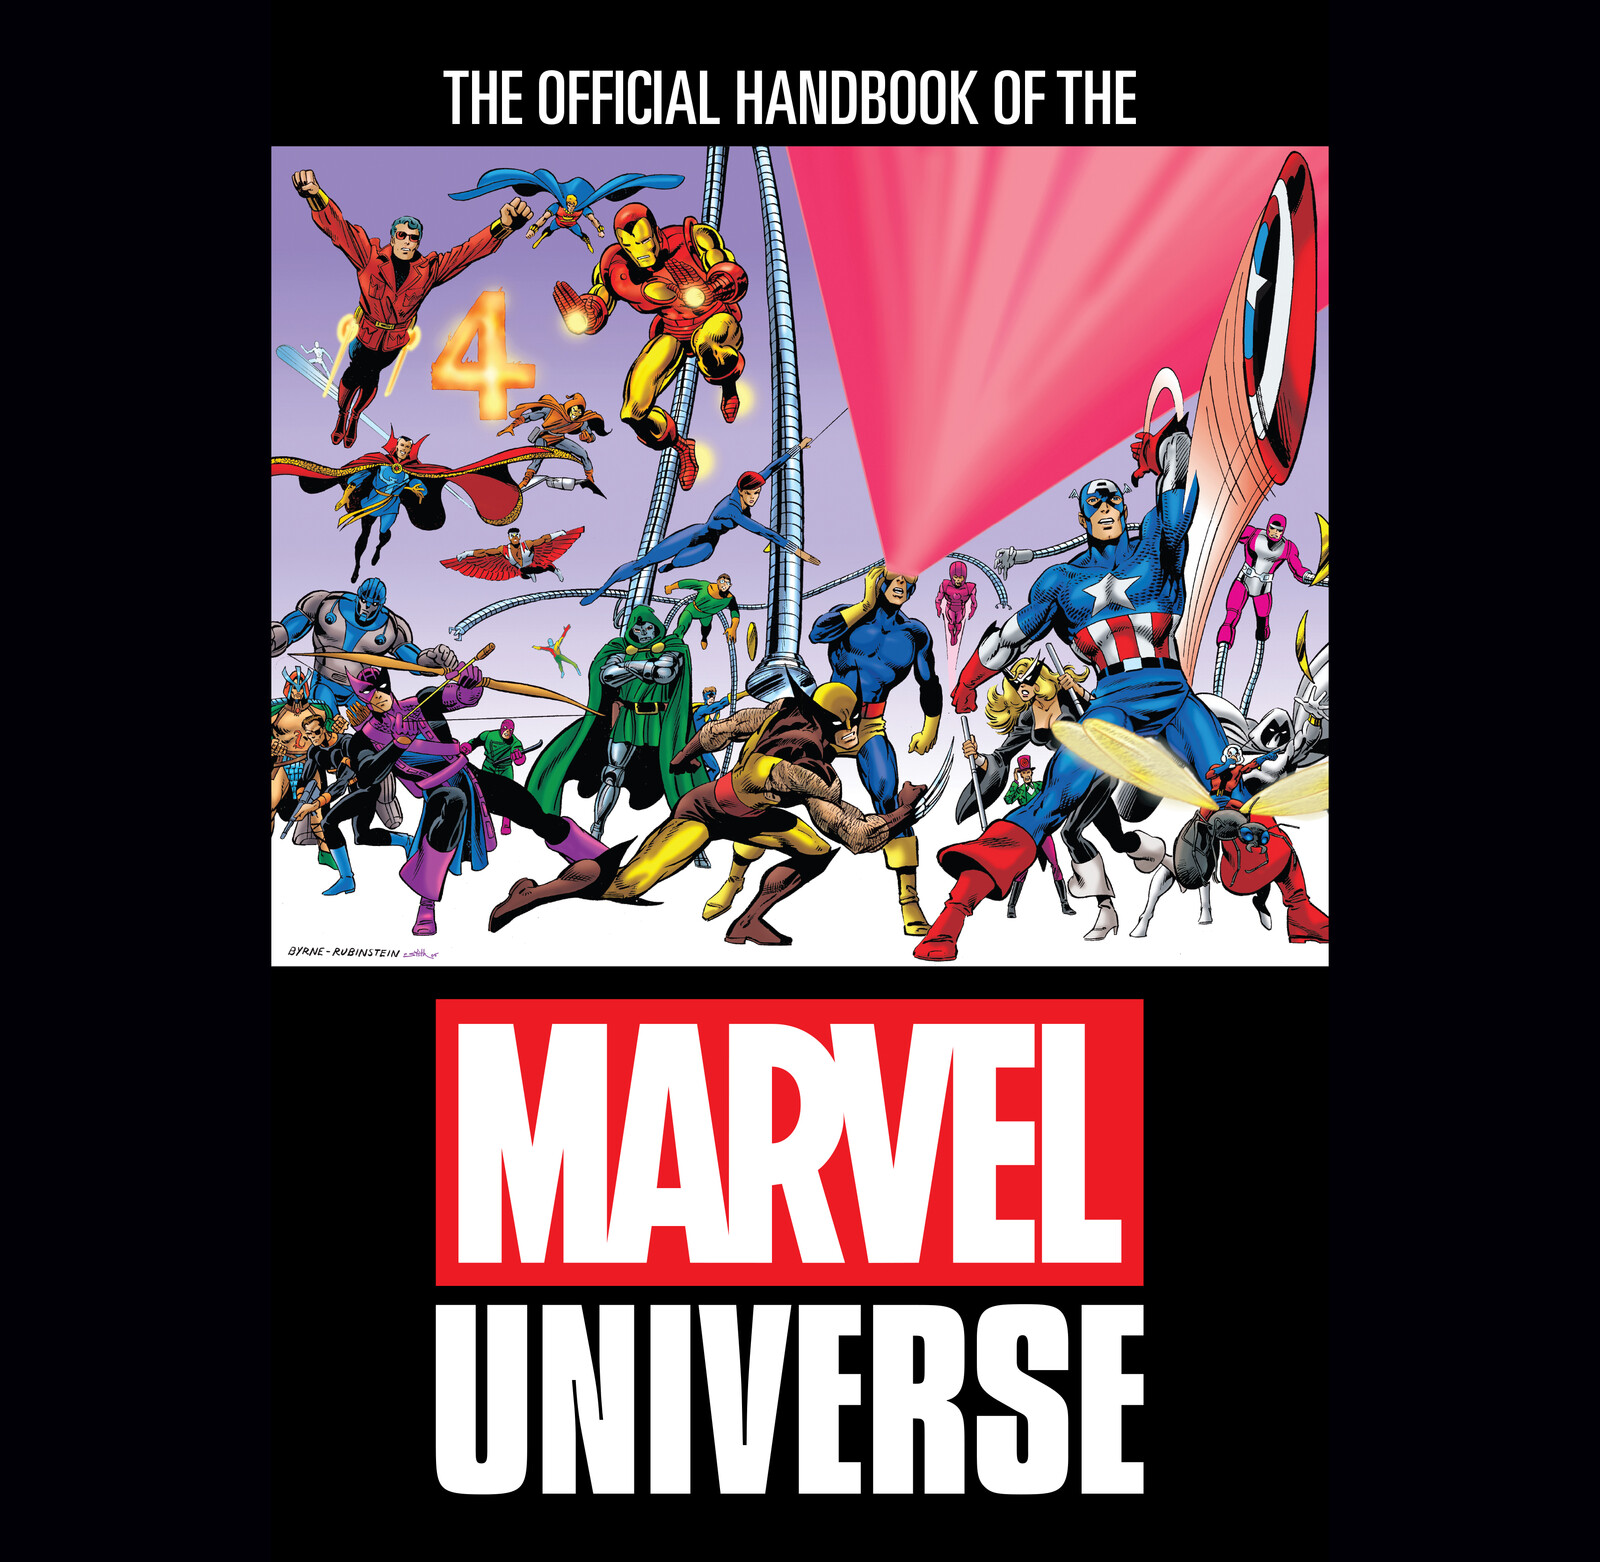 THE OFFICIAL HANDBOOK OF THE MARVEL UNIVERSE OMNIBUS Design